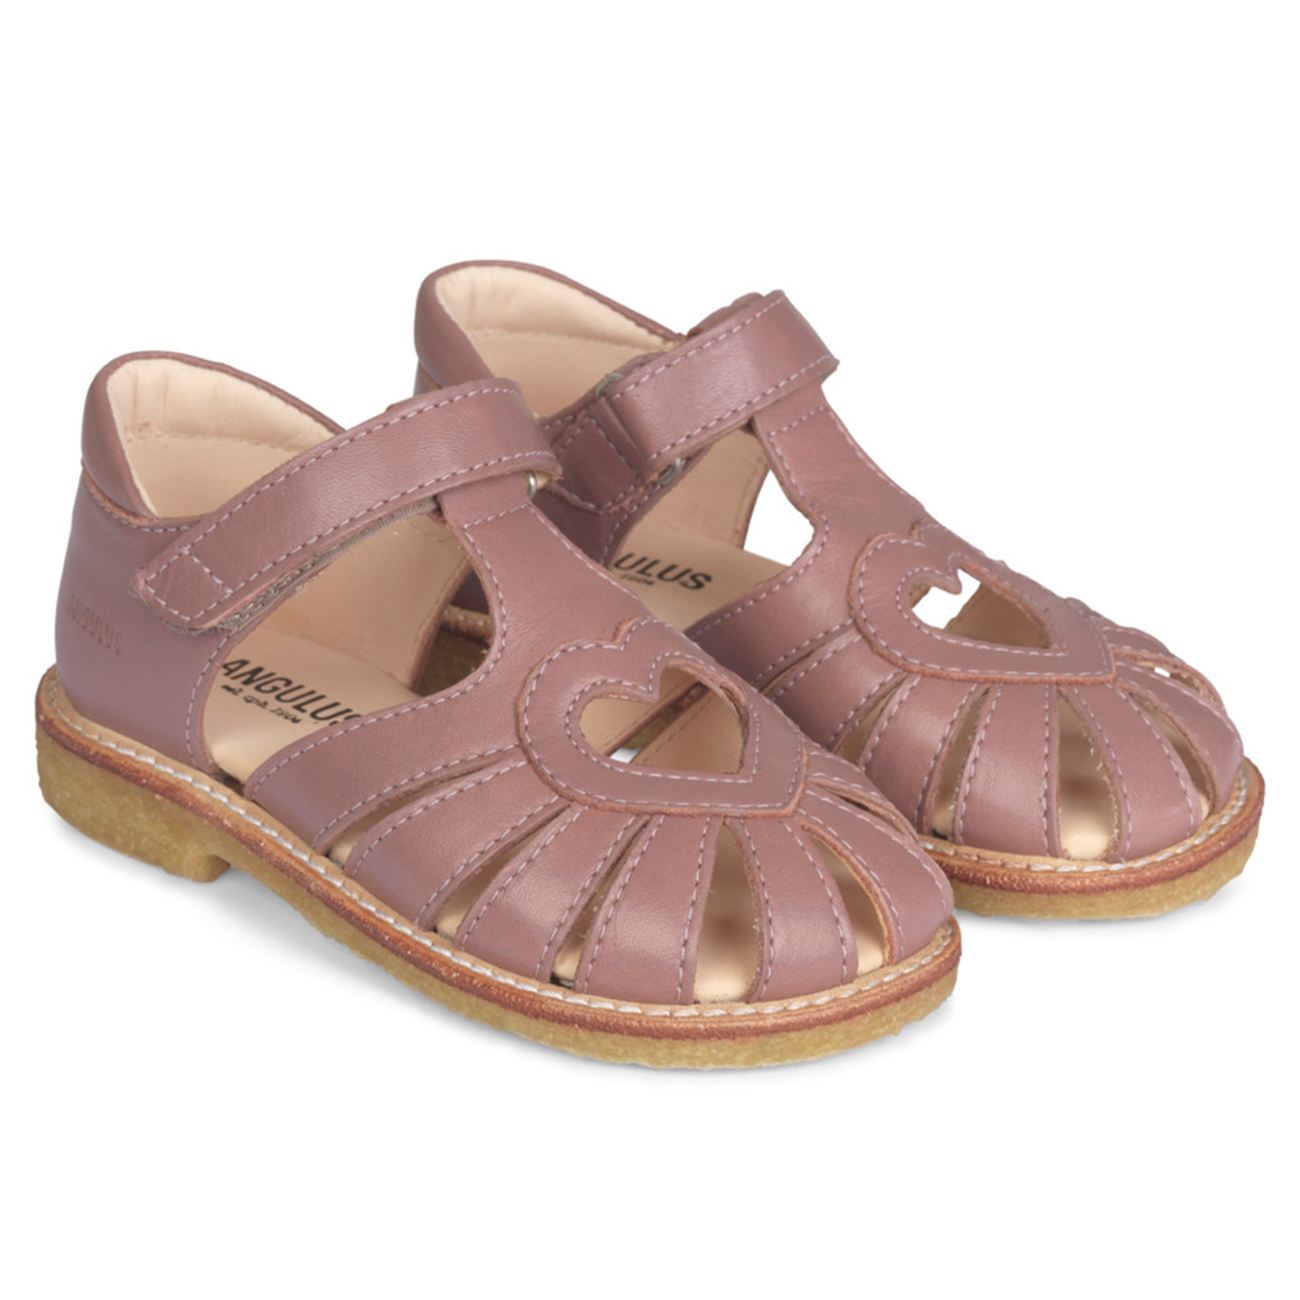 Angulus Sandal w. Closed Toe Plum 5186-101-1524